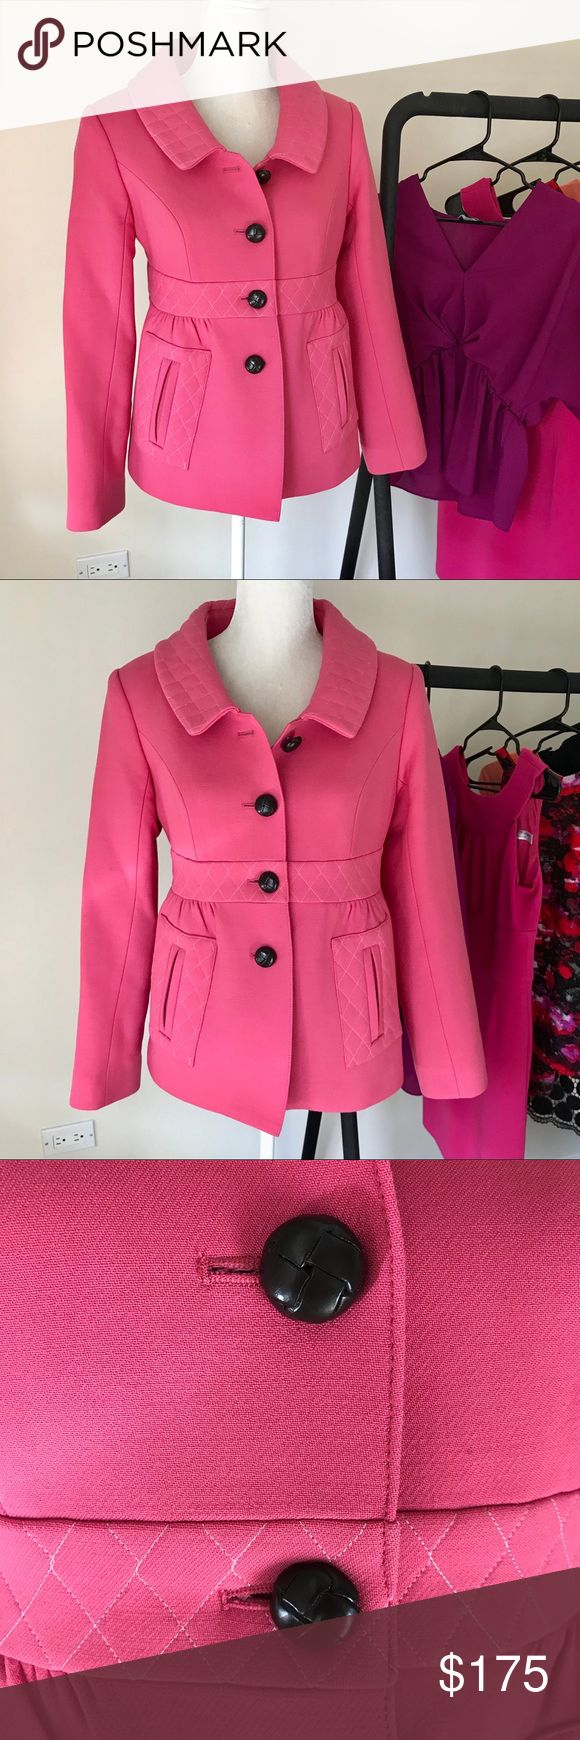 Smythe Les Vestes Tailored Pink Coat Perfect tailored pink coat from Smythe. Chocolate brown lining. Super high-quality materials and construction. Great tailored fit. Size 8. No trades. Smythe Jackets & Coats